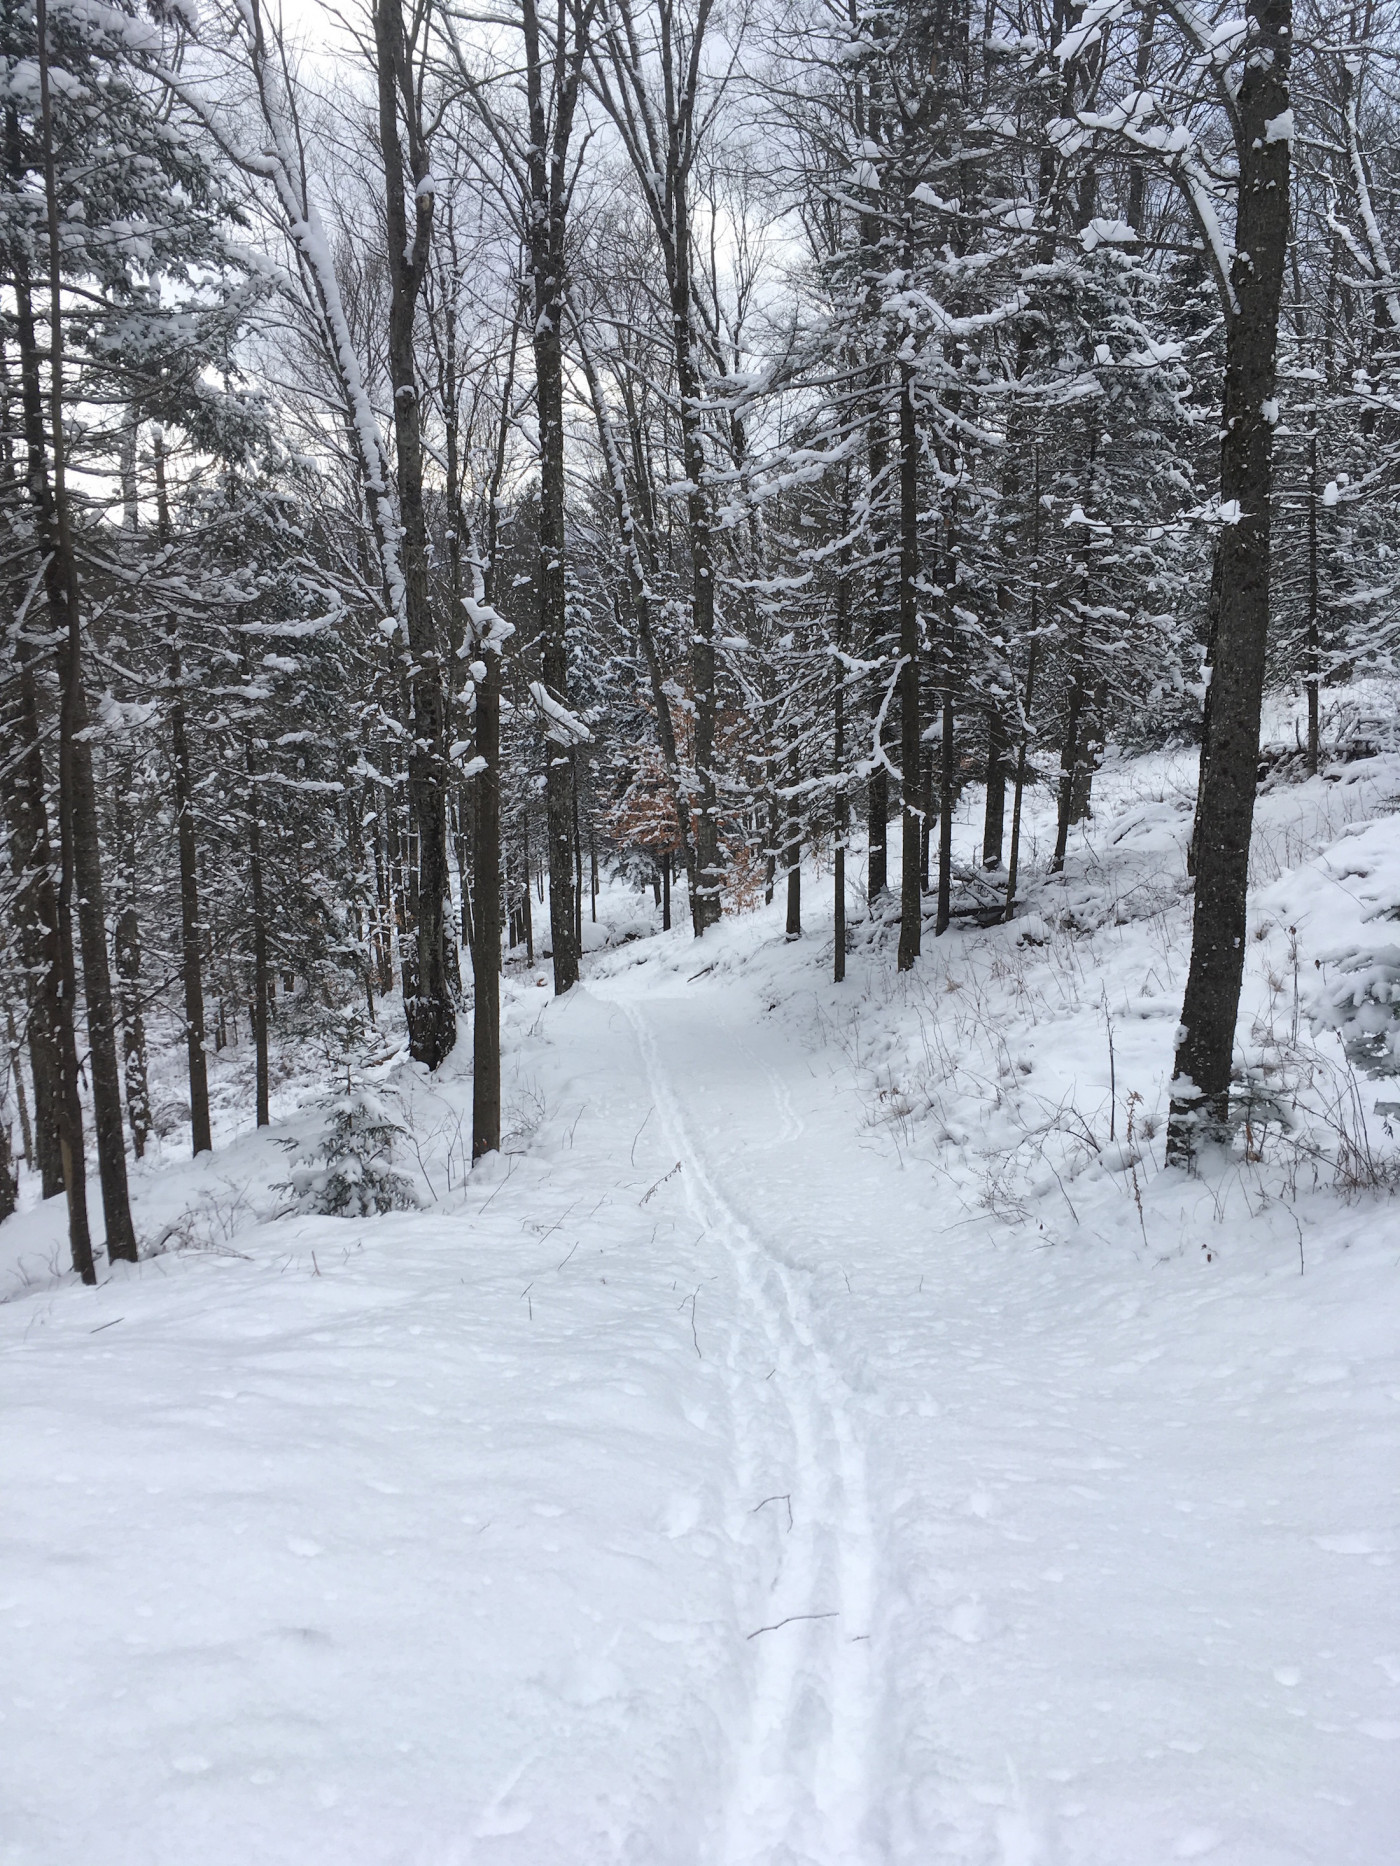 Tracks on ungroomed backcountry trail